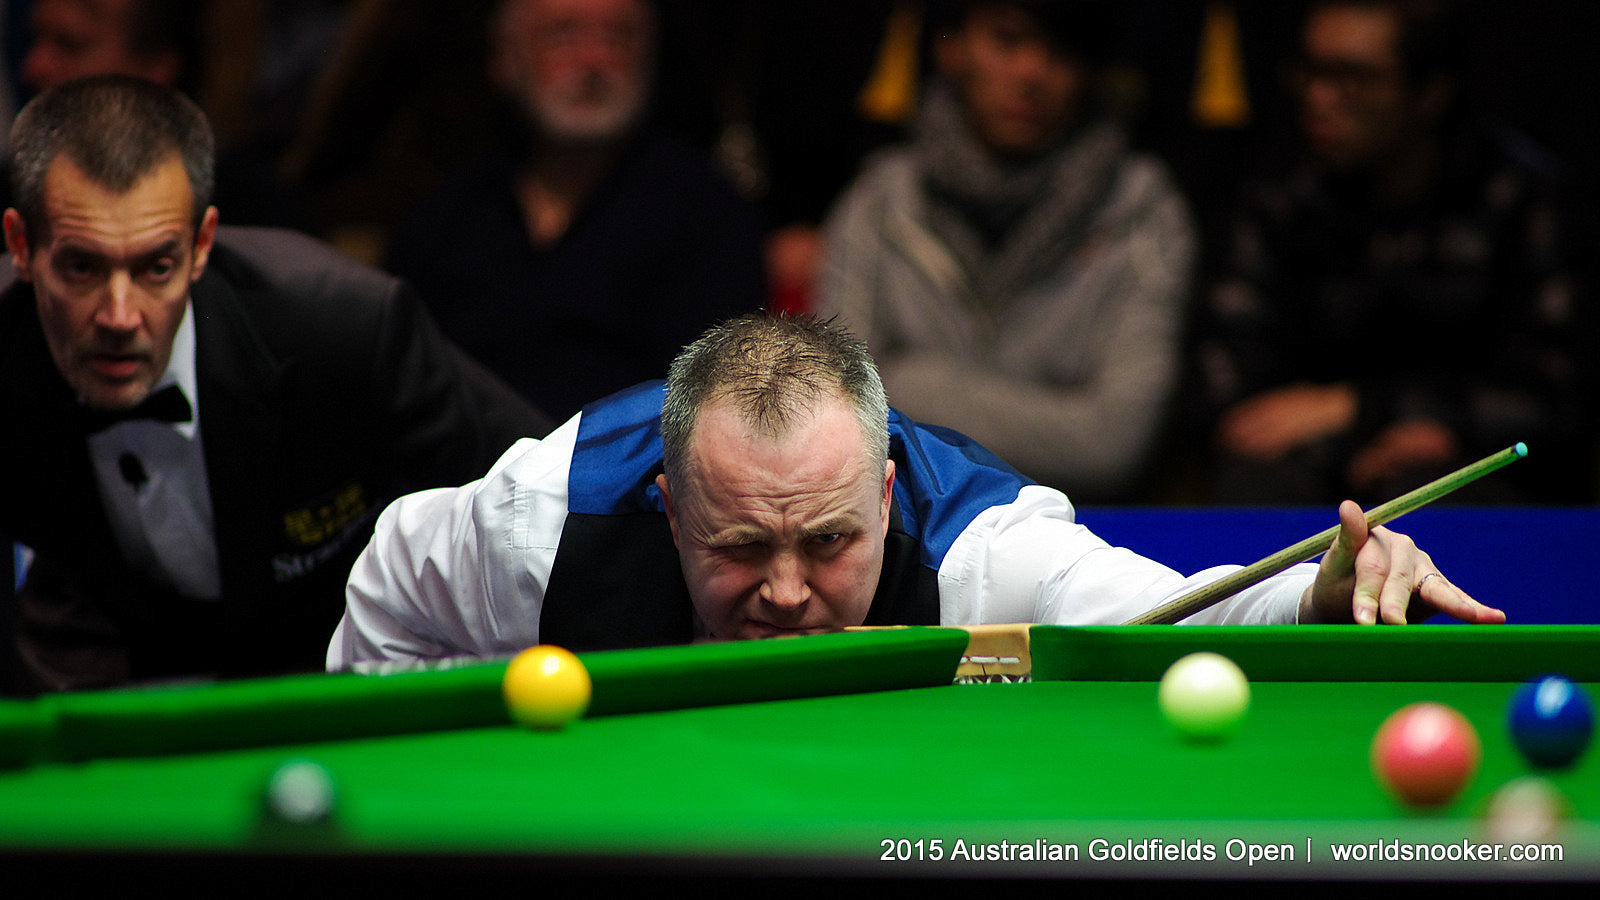 John Higgins at Australian Open - courtesy www.worldsnooker.com